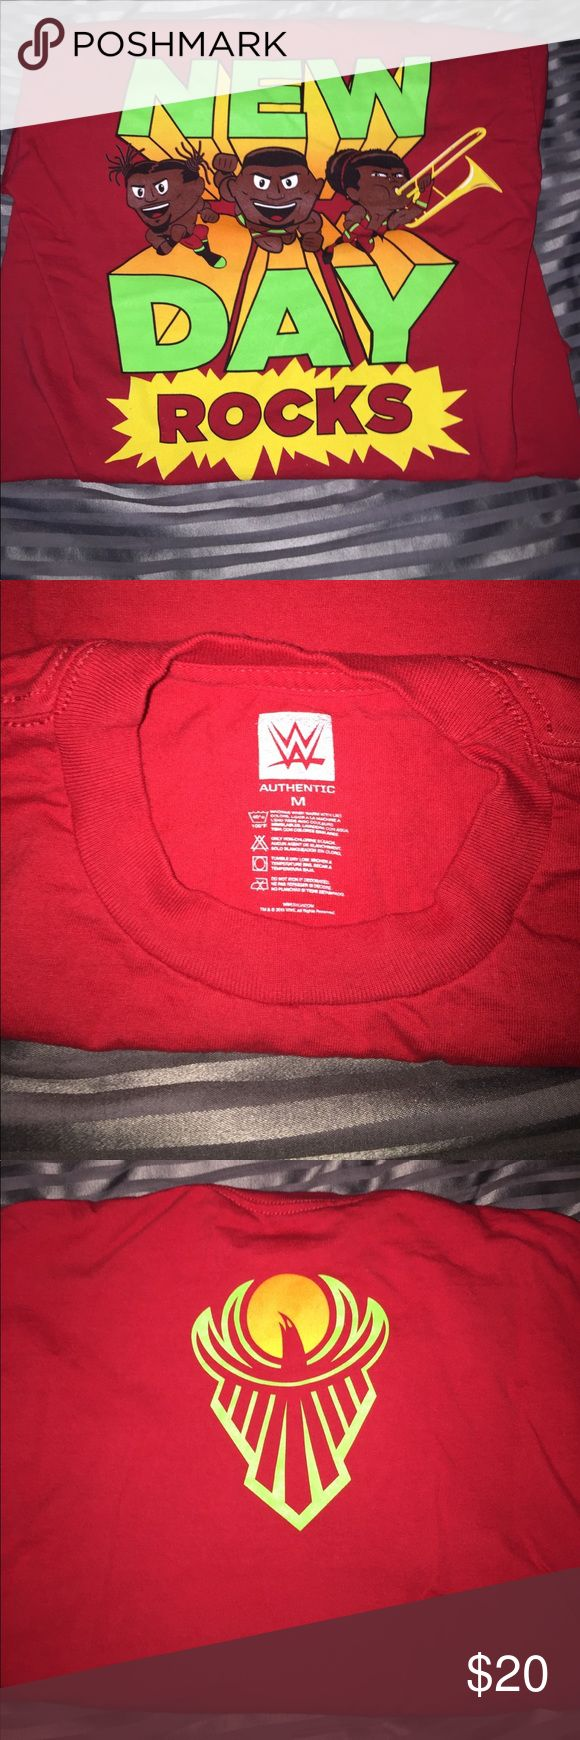 WWE New Day Rocks medium shirt This is an authentic wwe new day rocks special edition shirt size medium! Comes from smoke and pet free home! WWE Shirts Tees - Short Sleeve